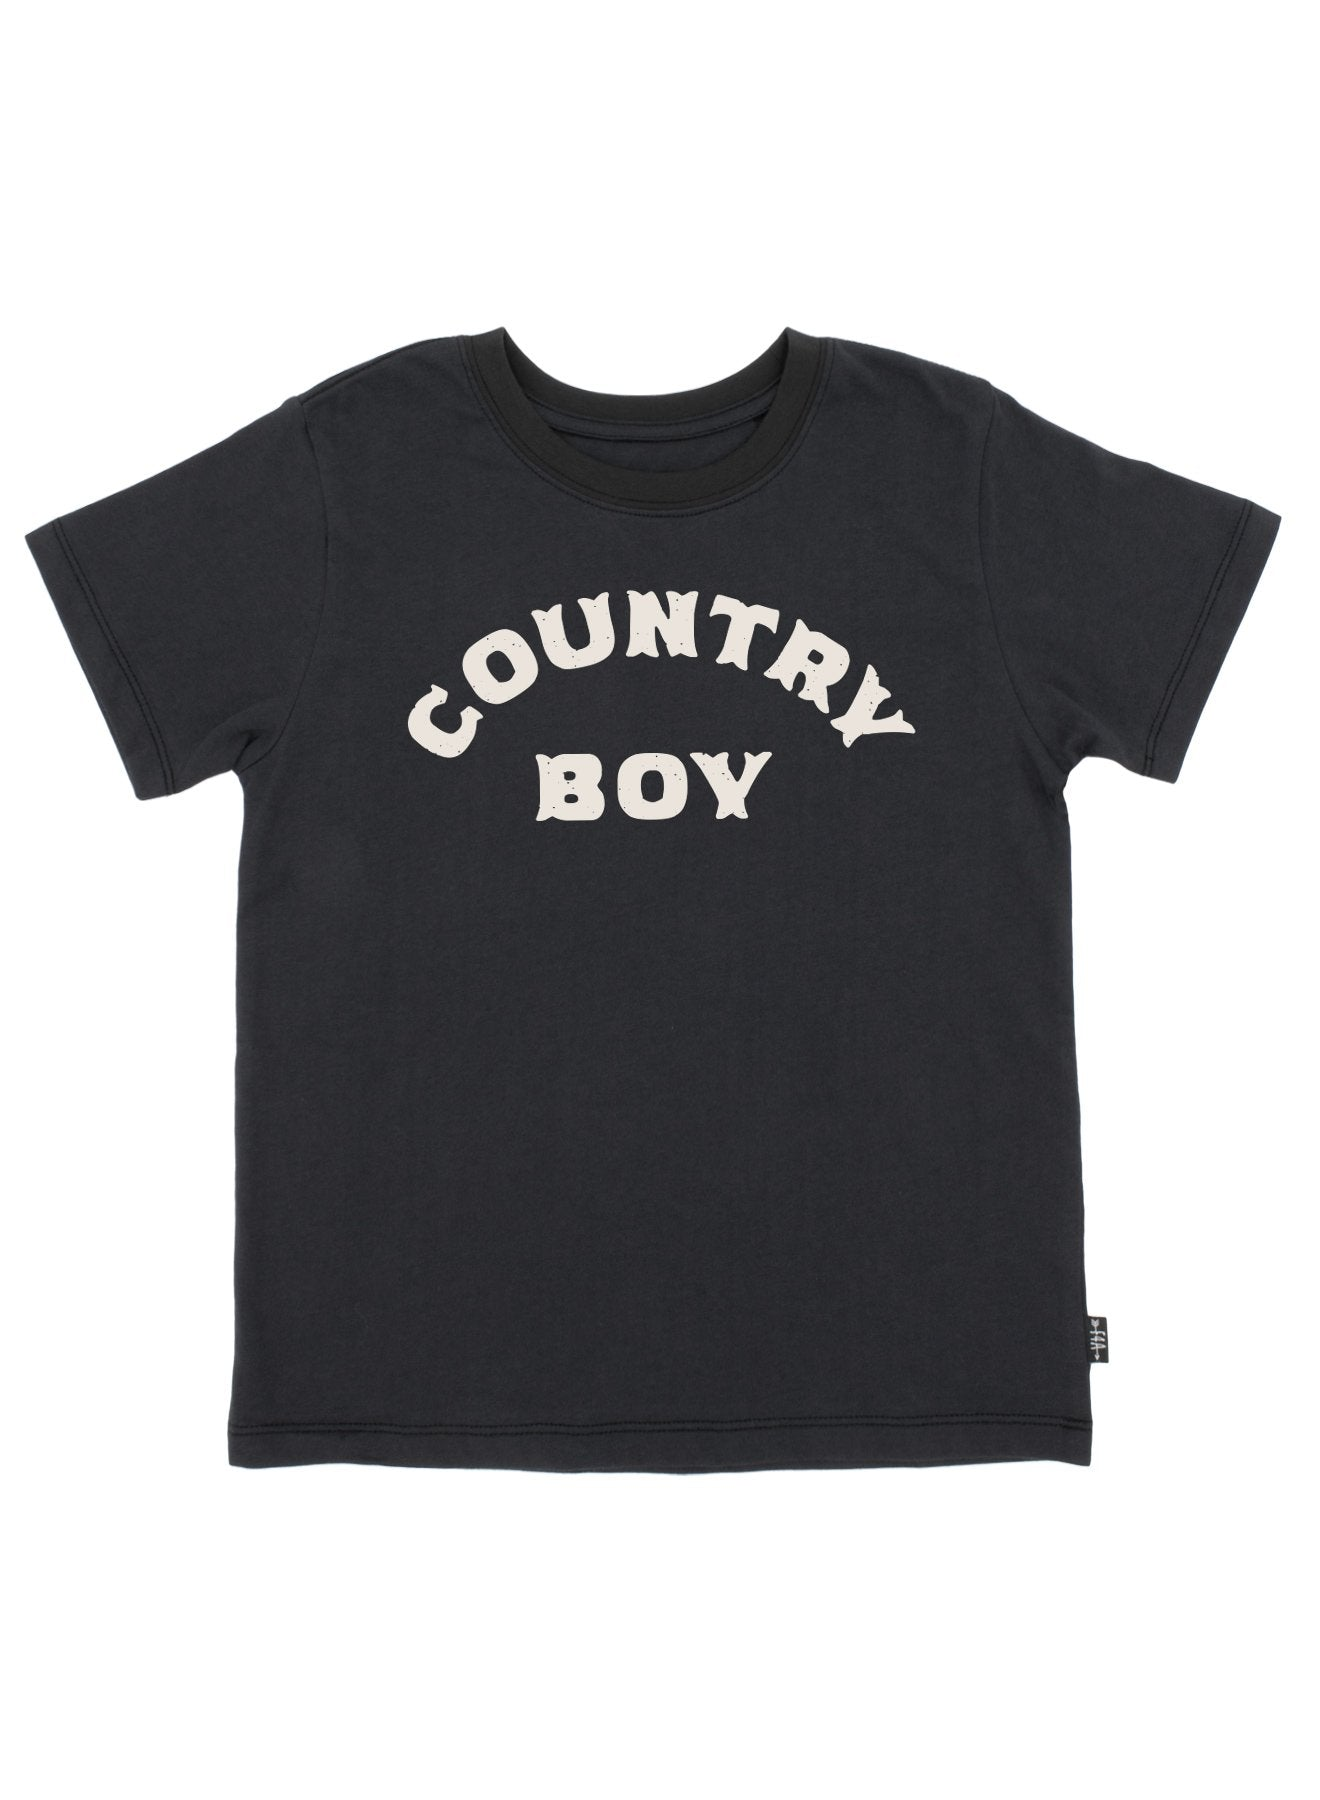 Country Boy Vintage Tee - Washed Black